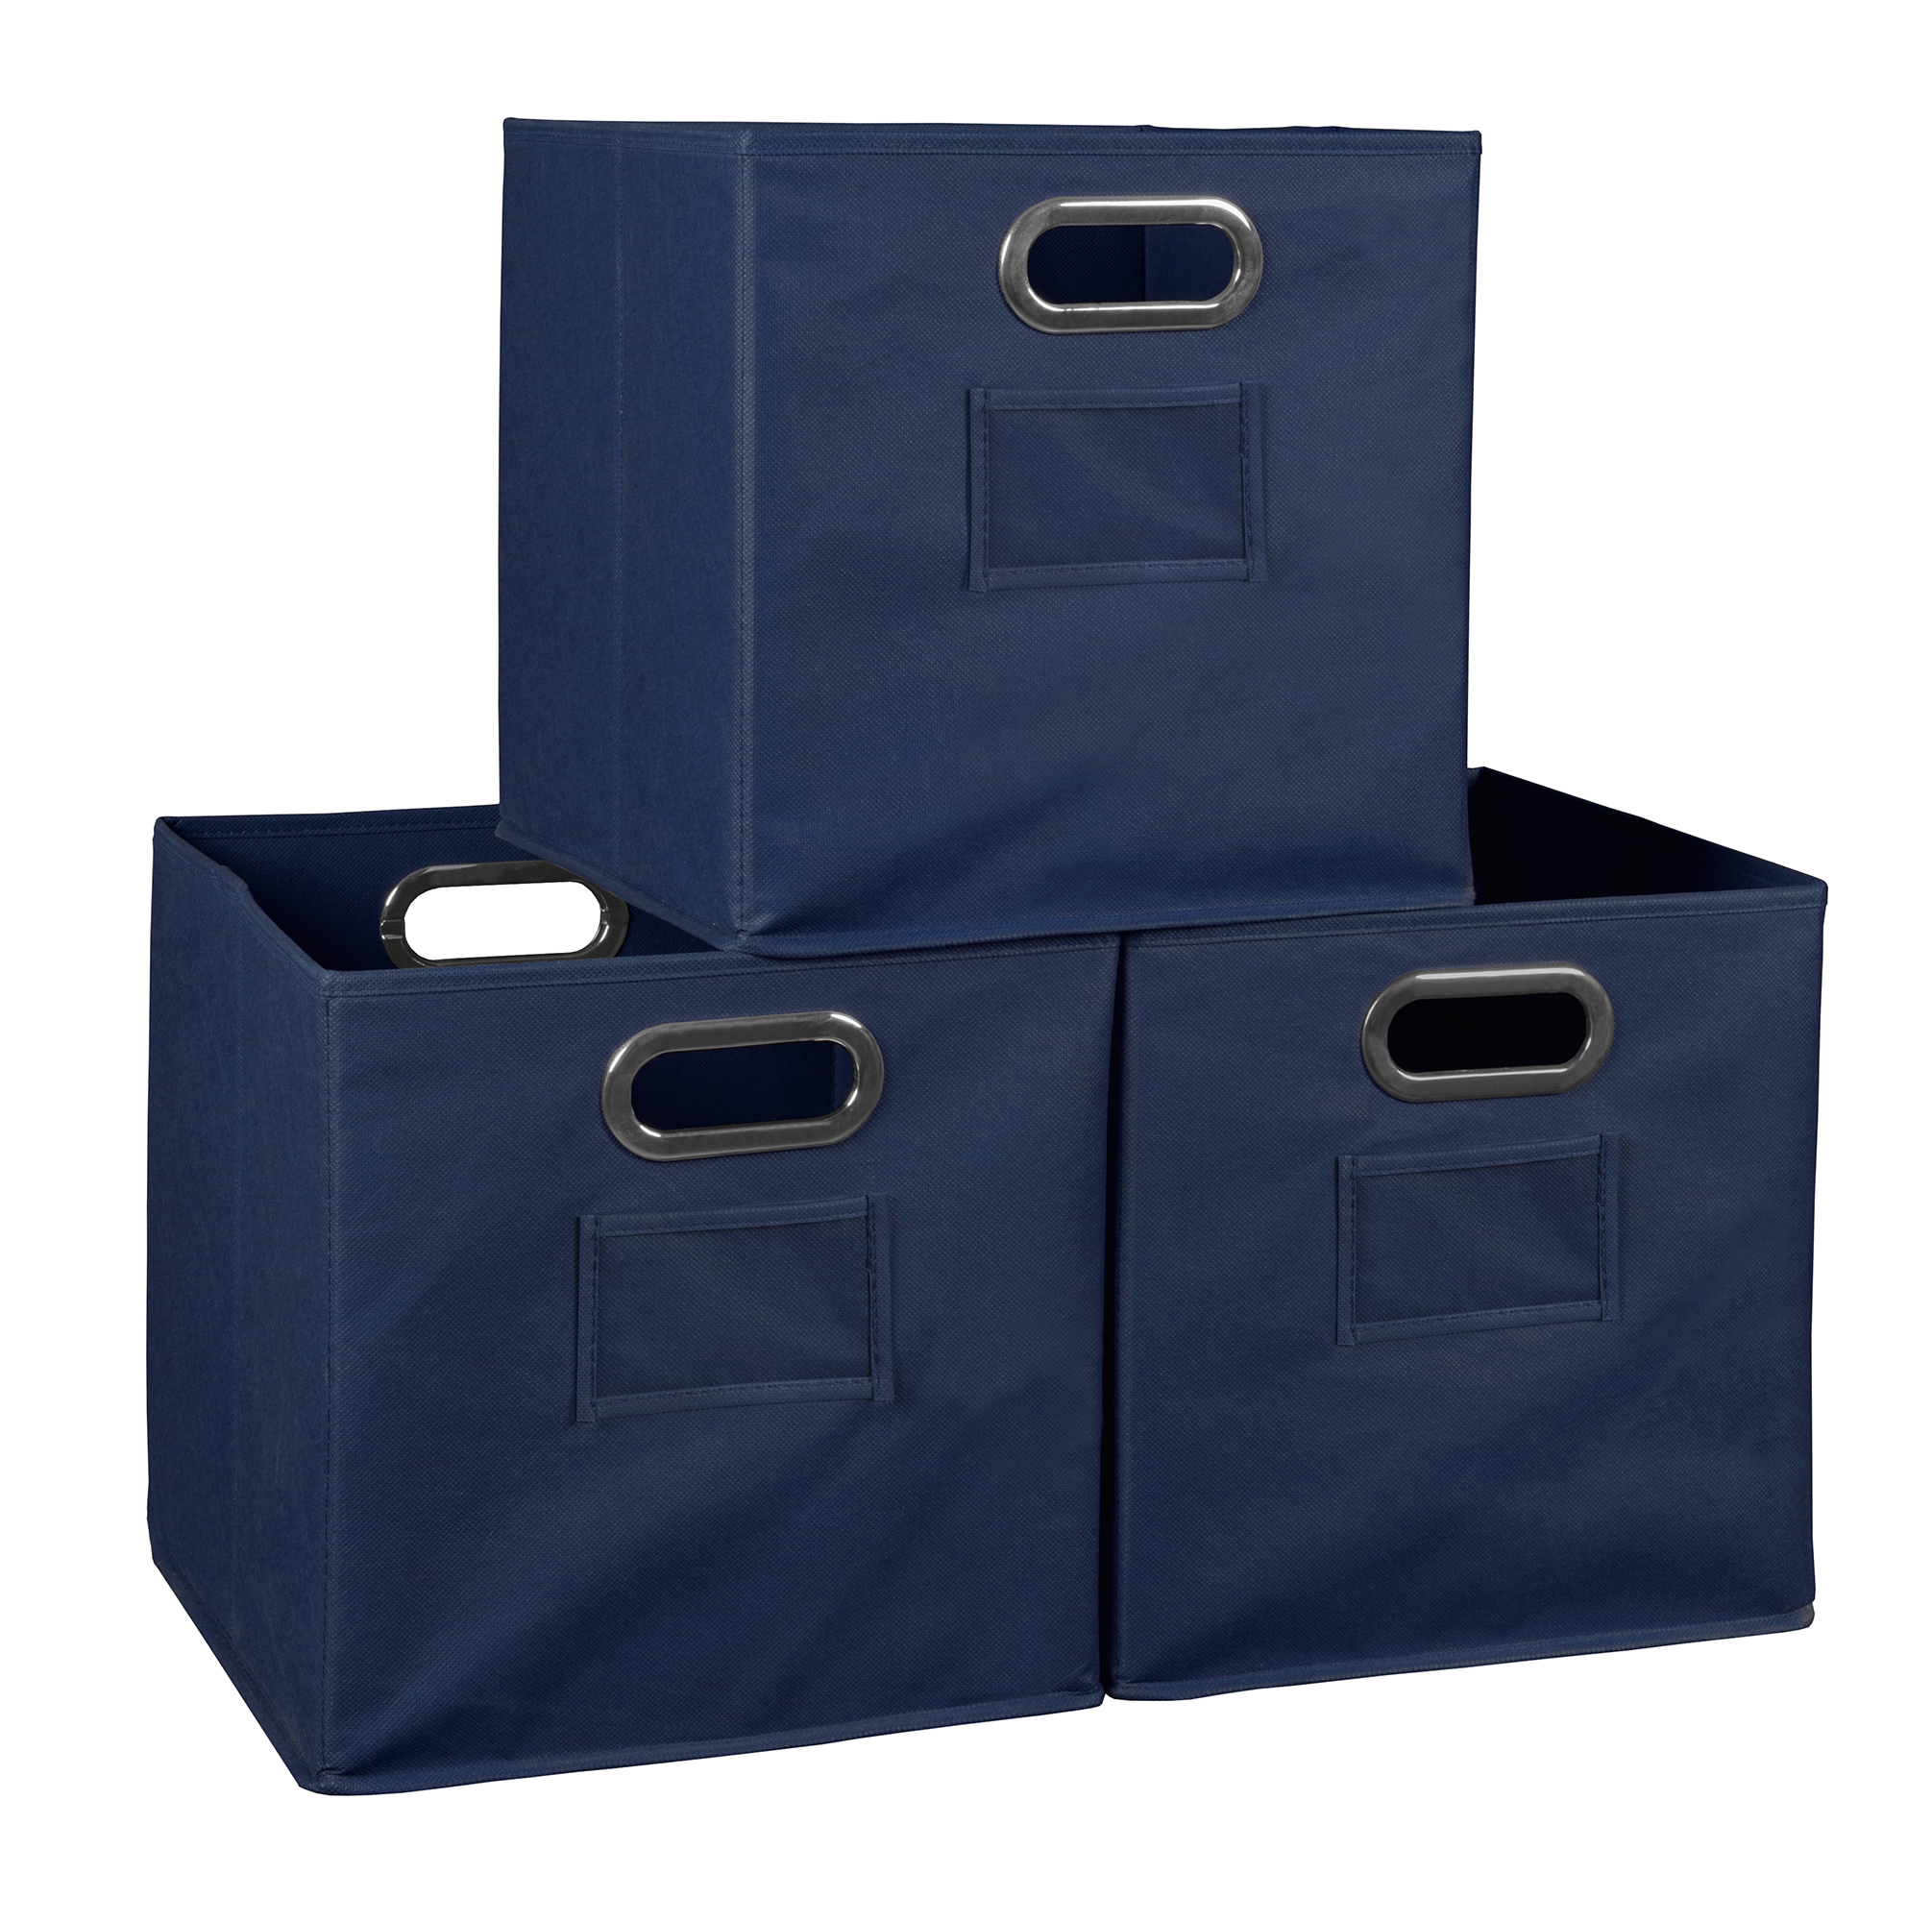 Niche Cubo Foldable Fabric Storage Bin, Set of 3